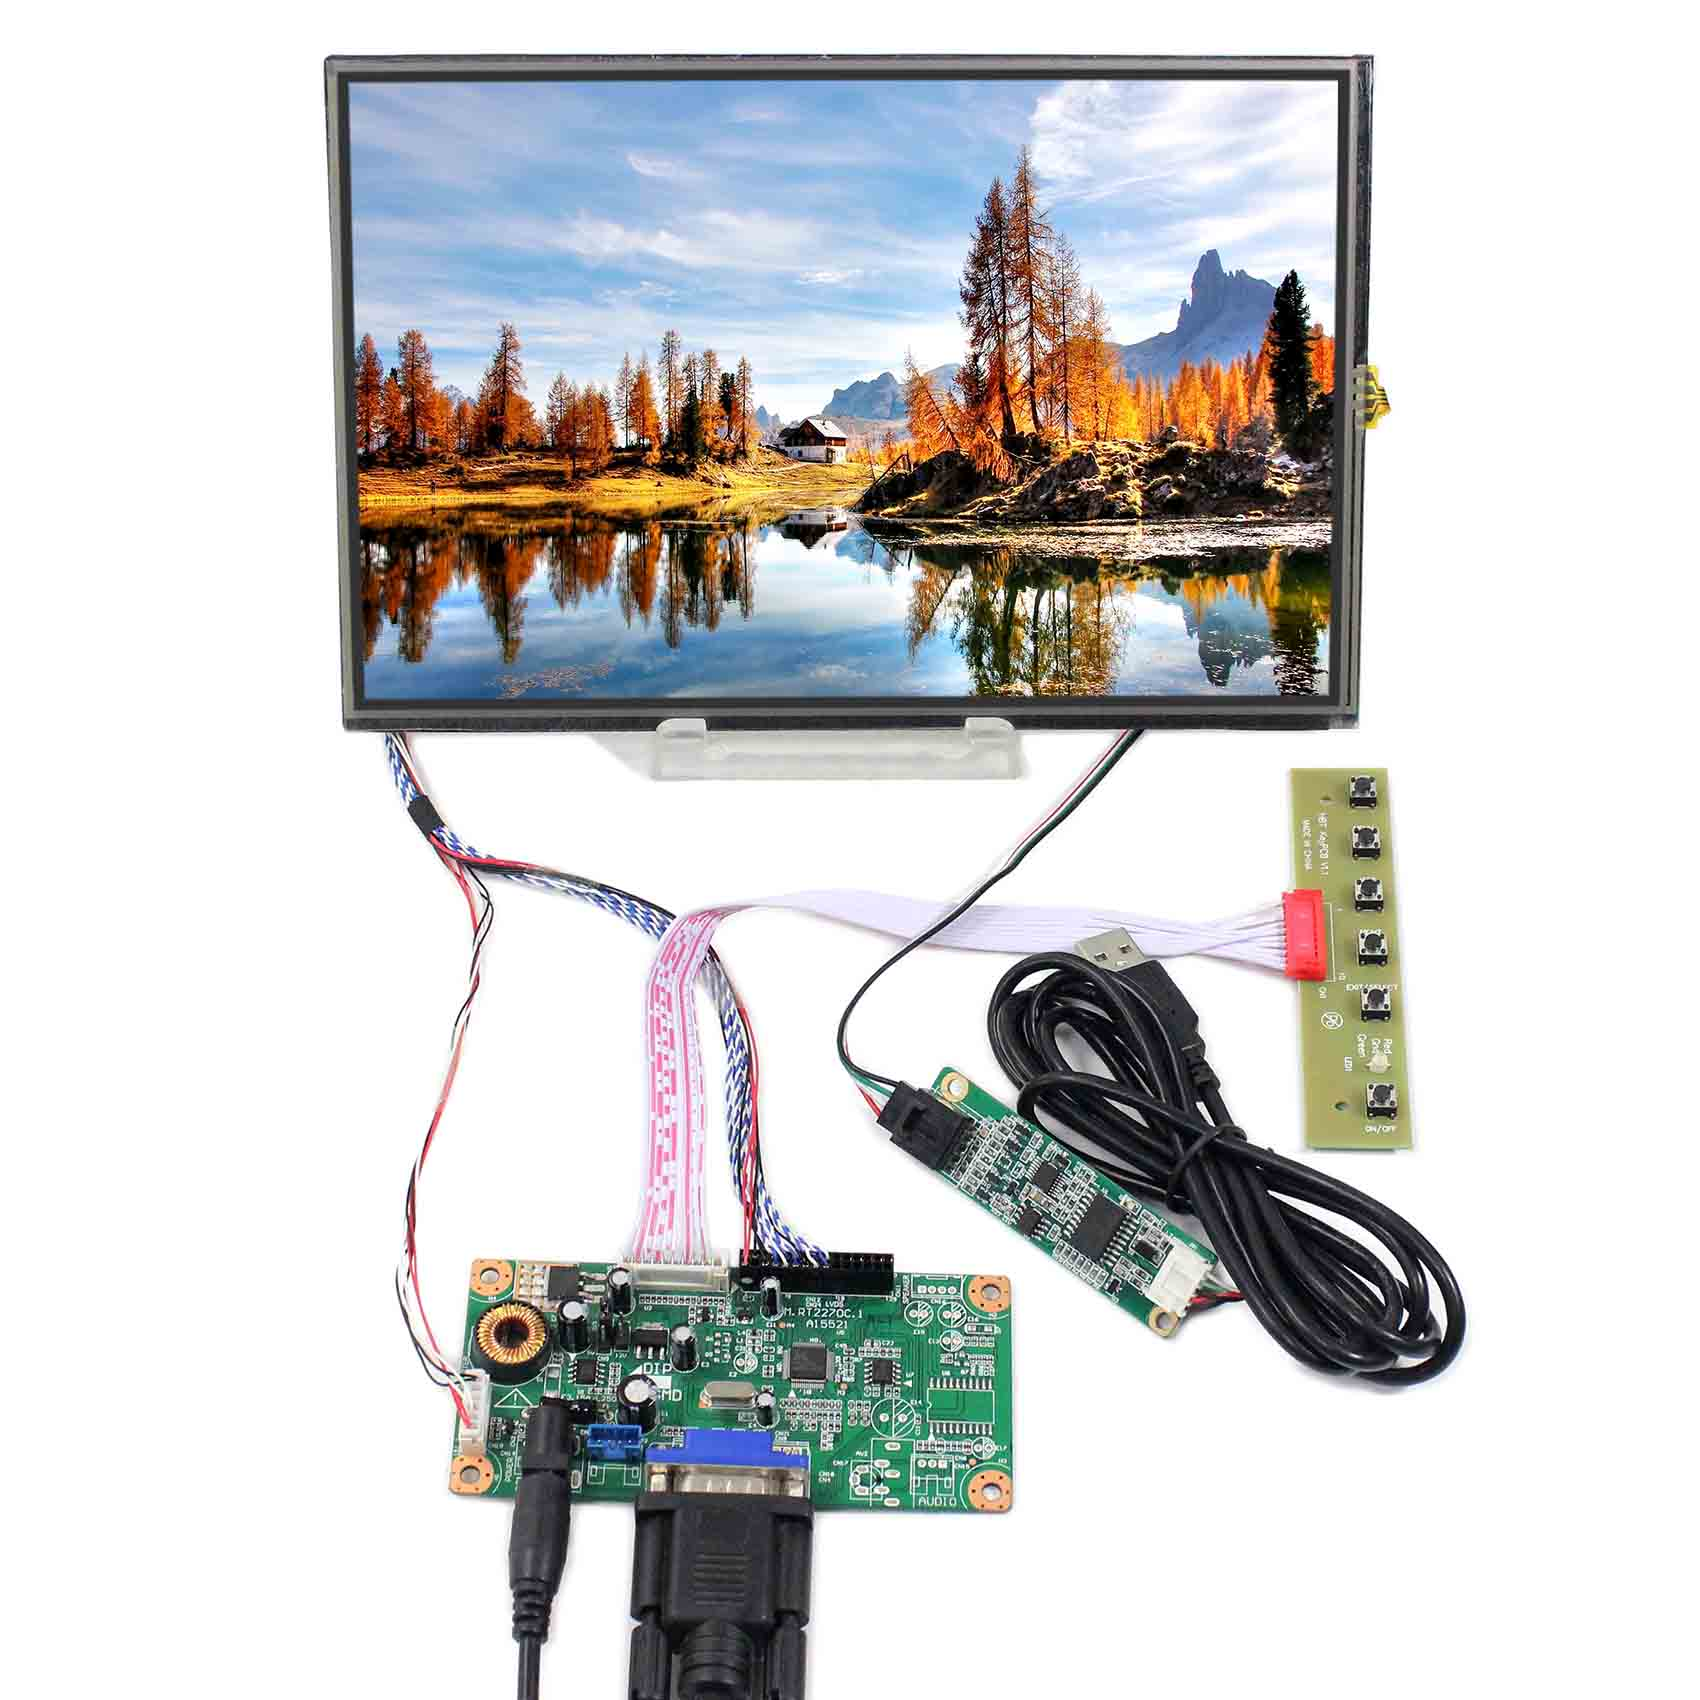 10.1inch M101NWWB 1280X800 LCD Screen With Resistive Touch Panel VS101TP-A4 work with VGA LCD Controller Board10.1inch M101NWWB 1280X800 LCD Screen With Resistive Touch Panel VS101TP-A4 work with VGA LCD Controller Board